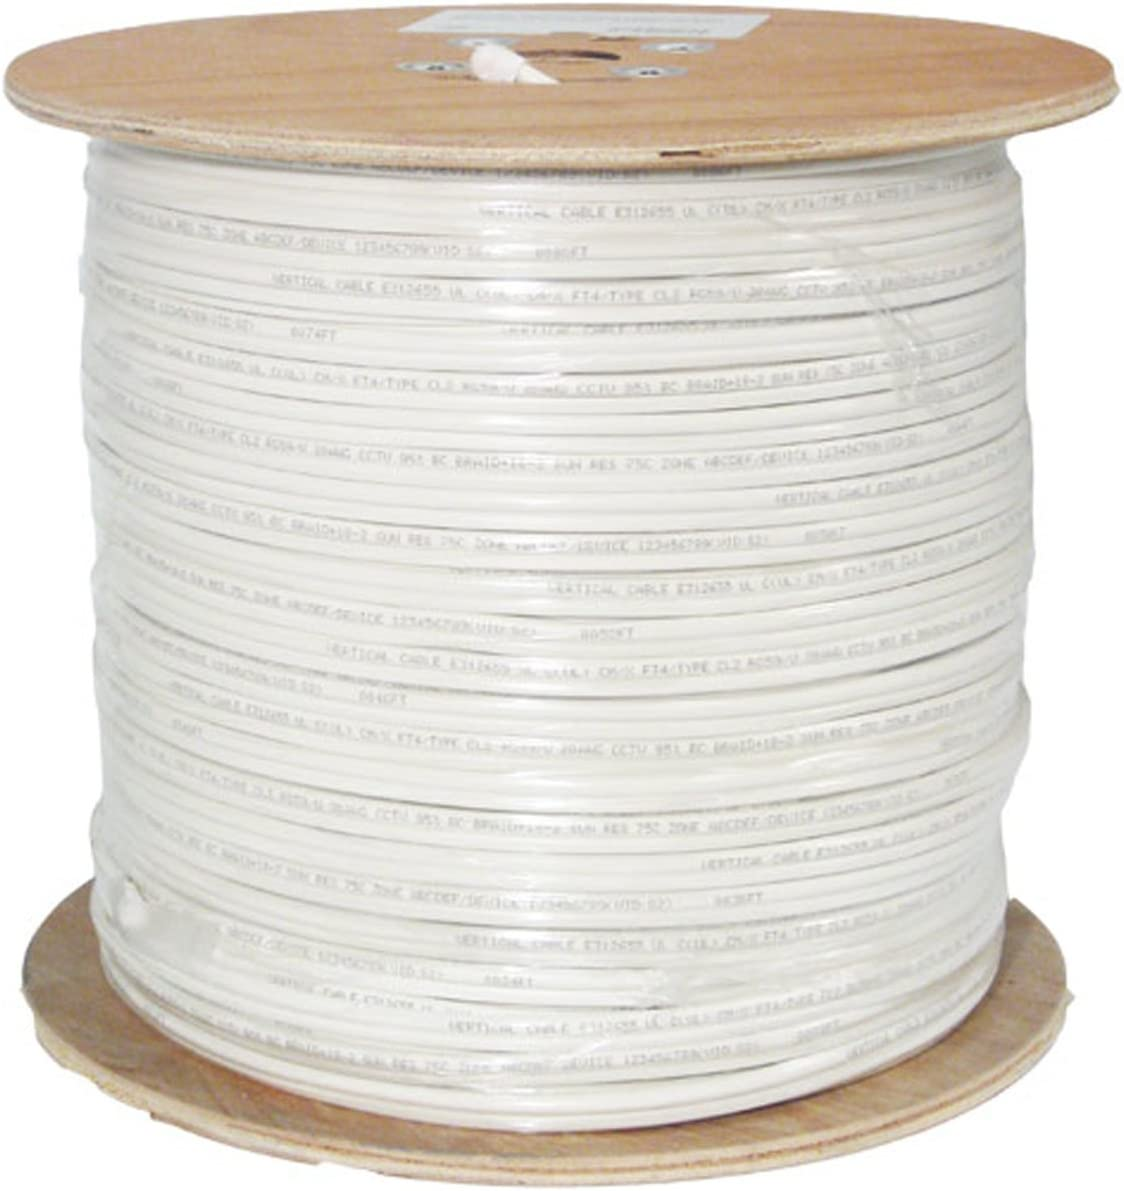 Wooden Spool 2 Conductor 41 Strand 14AWG White 1000 ft Audio Cable PVC Jacket